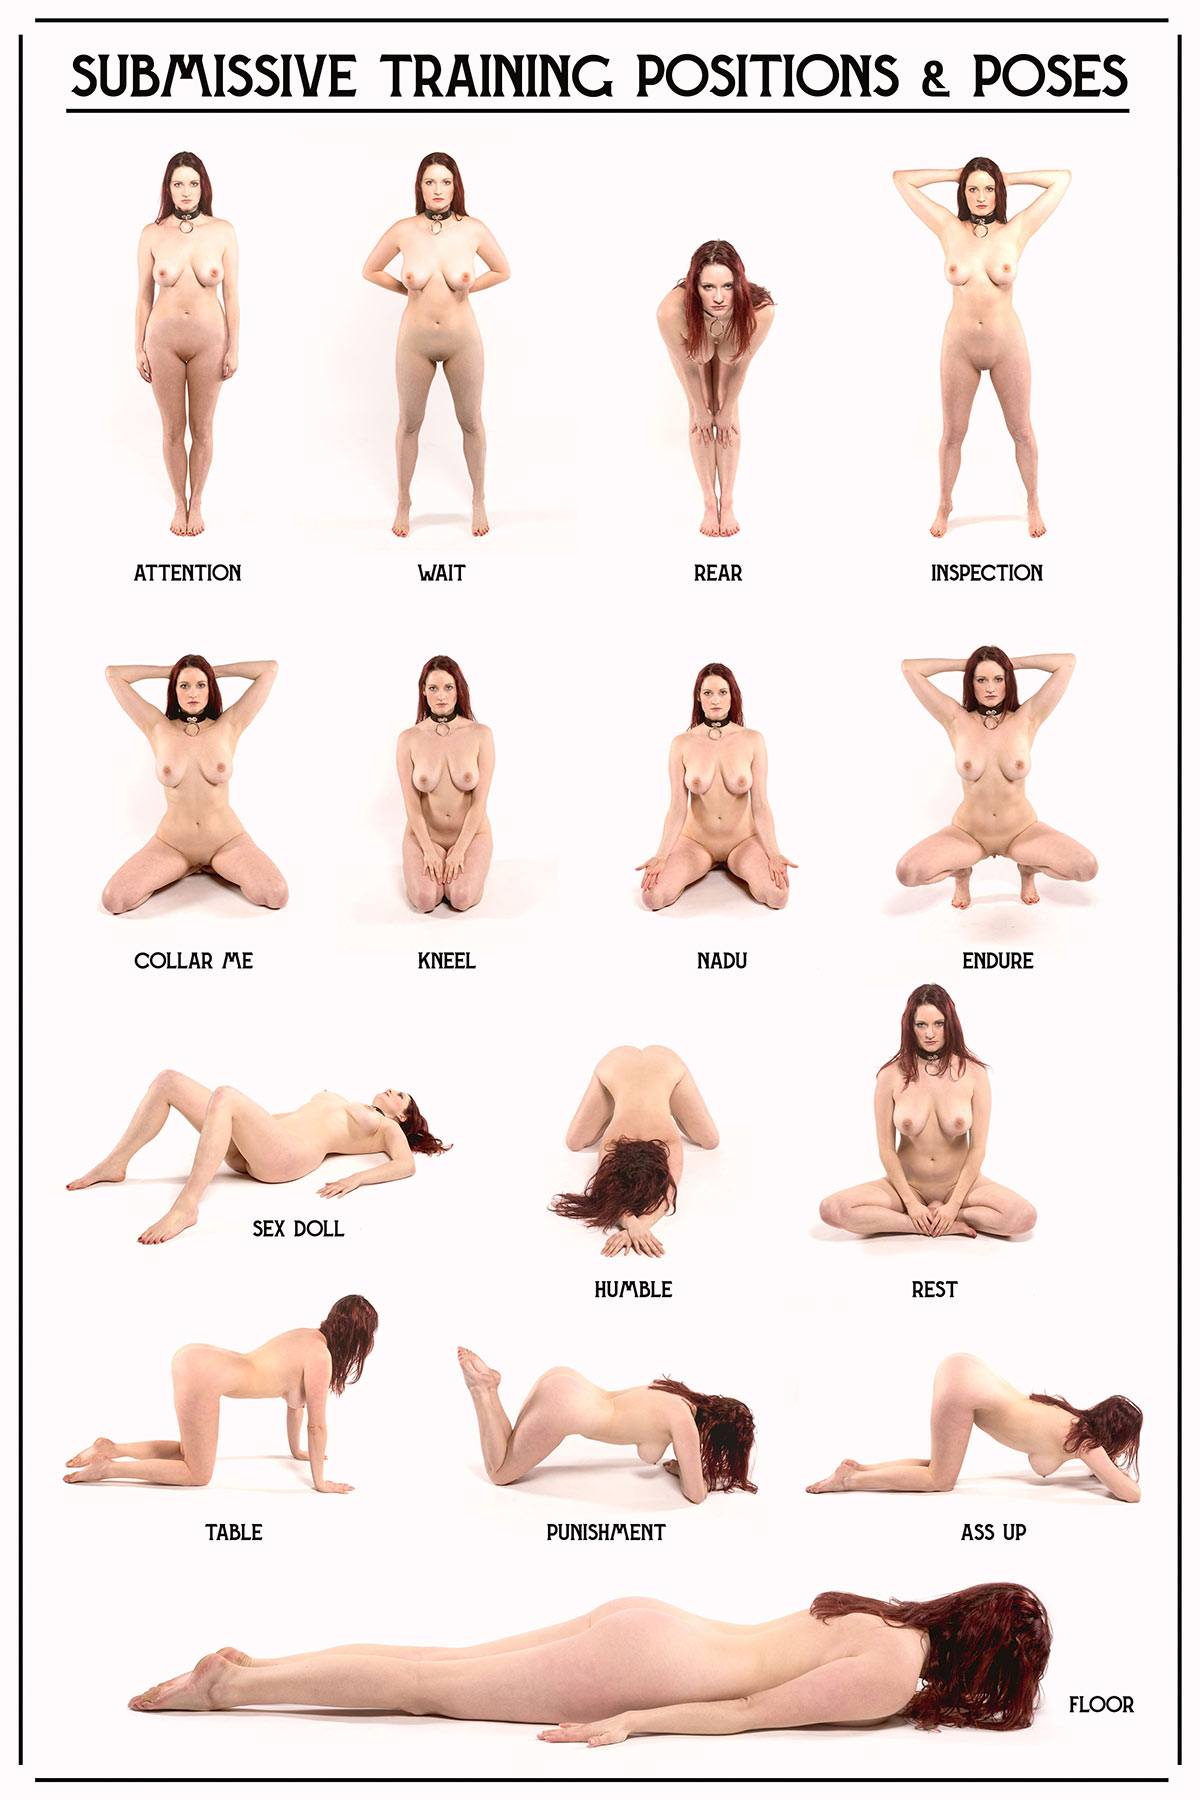 Submissvie Training Positions and Poses   Fetish   Photography